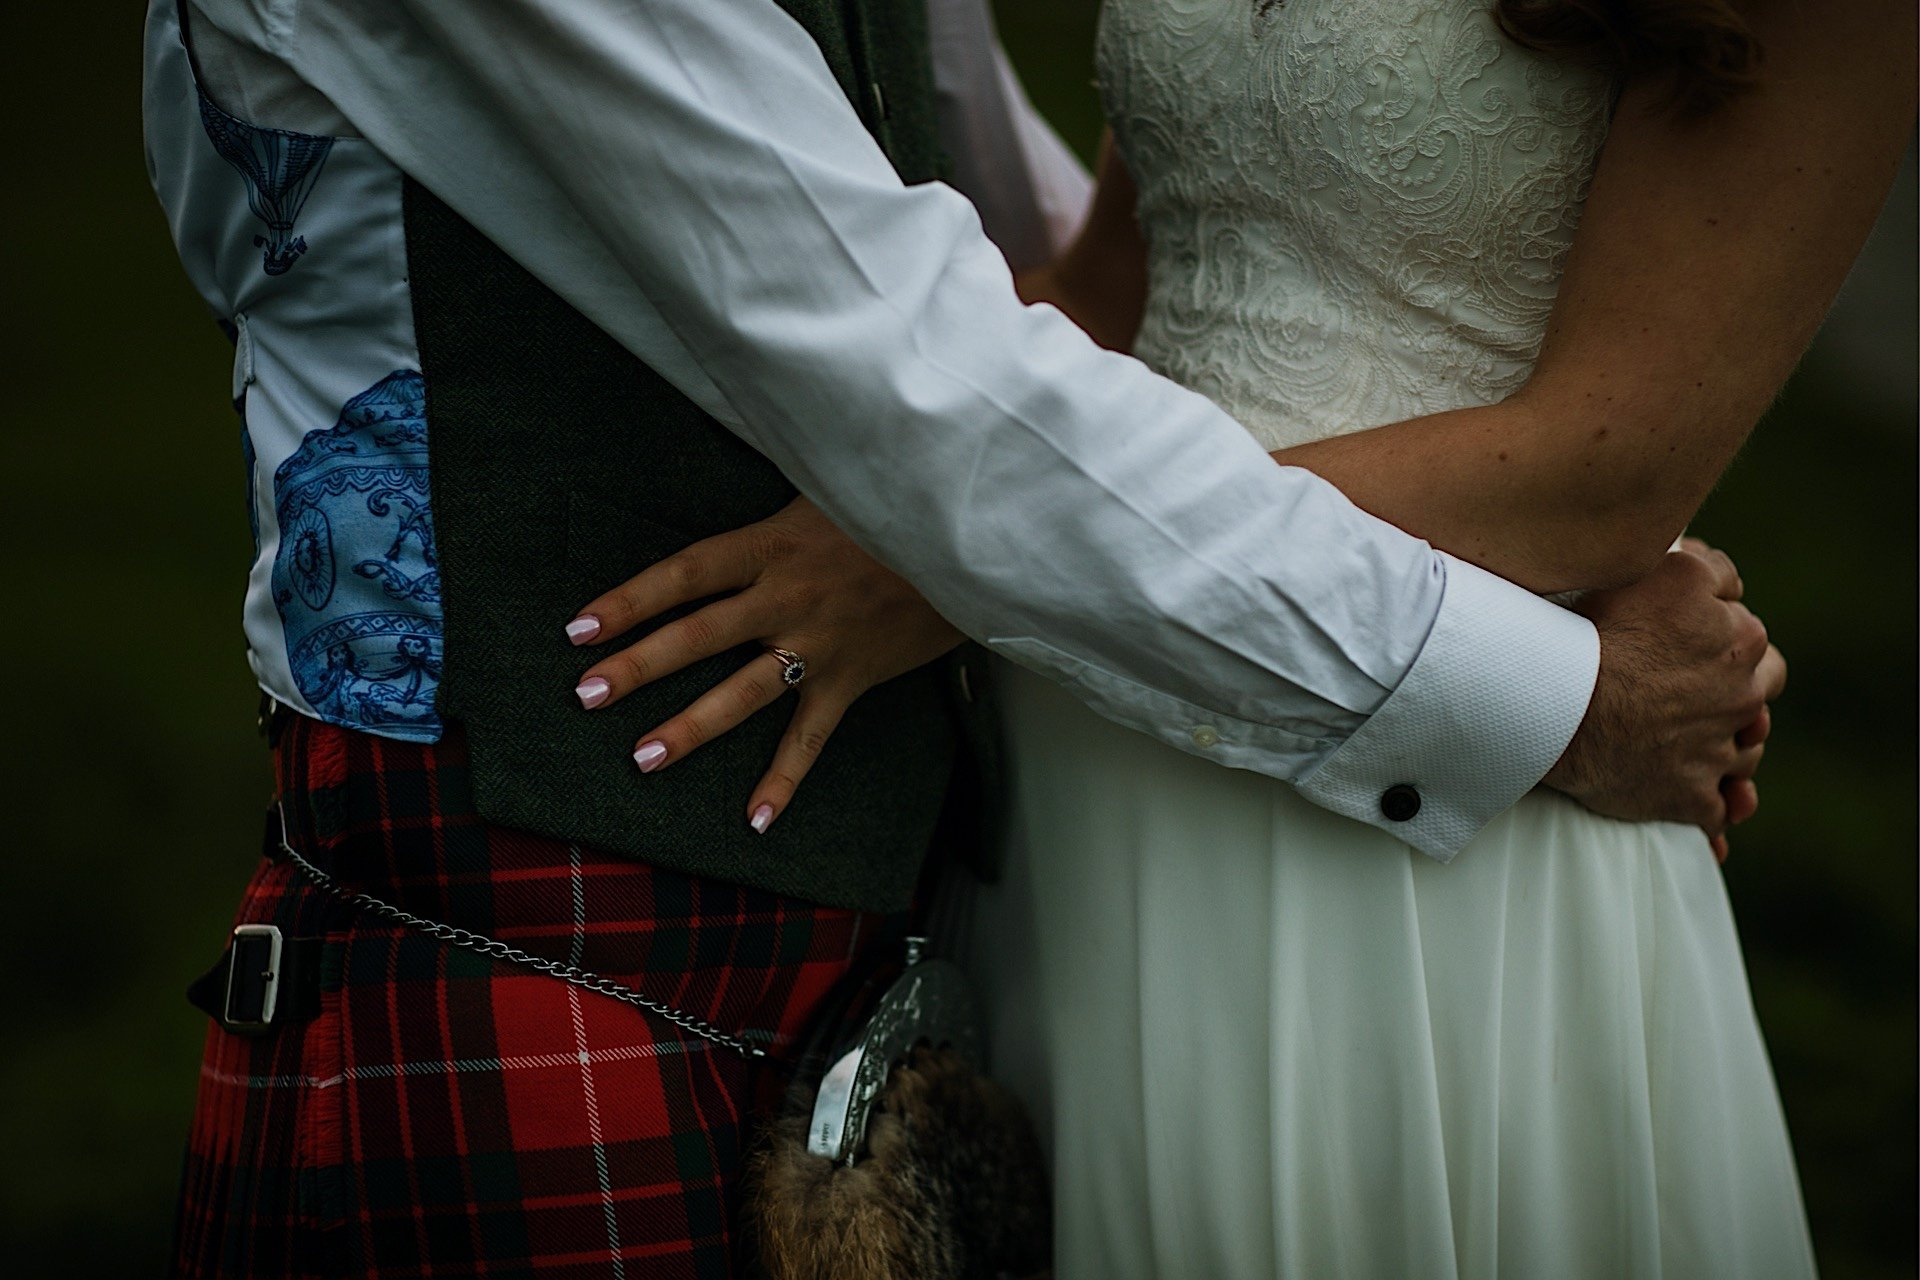 of bride and eachother holding Round Waist closeup the groom